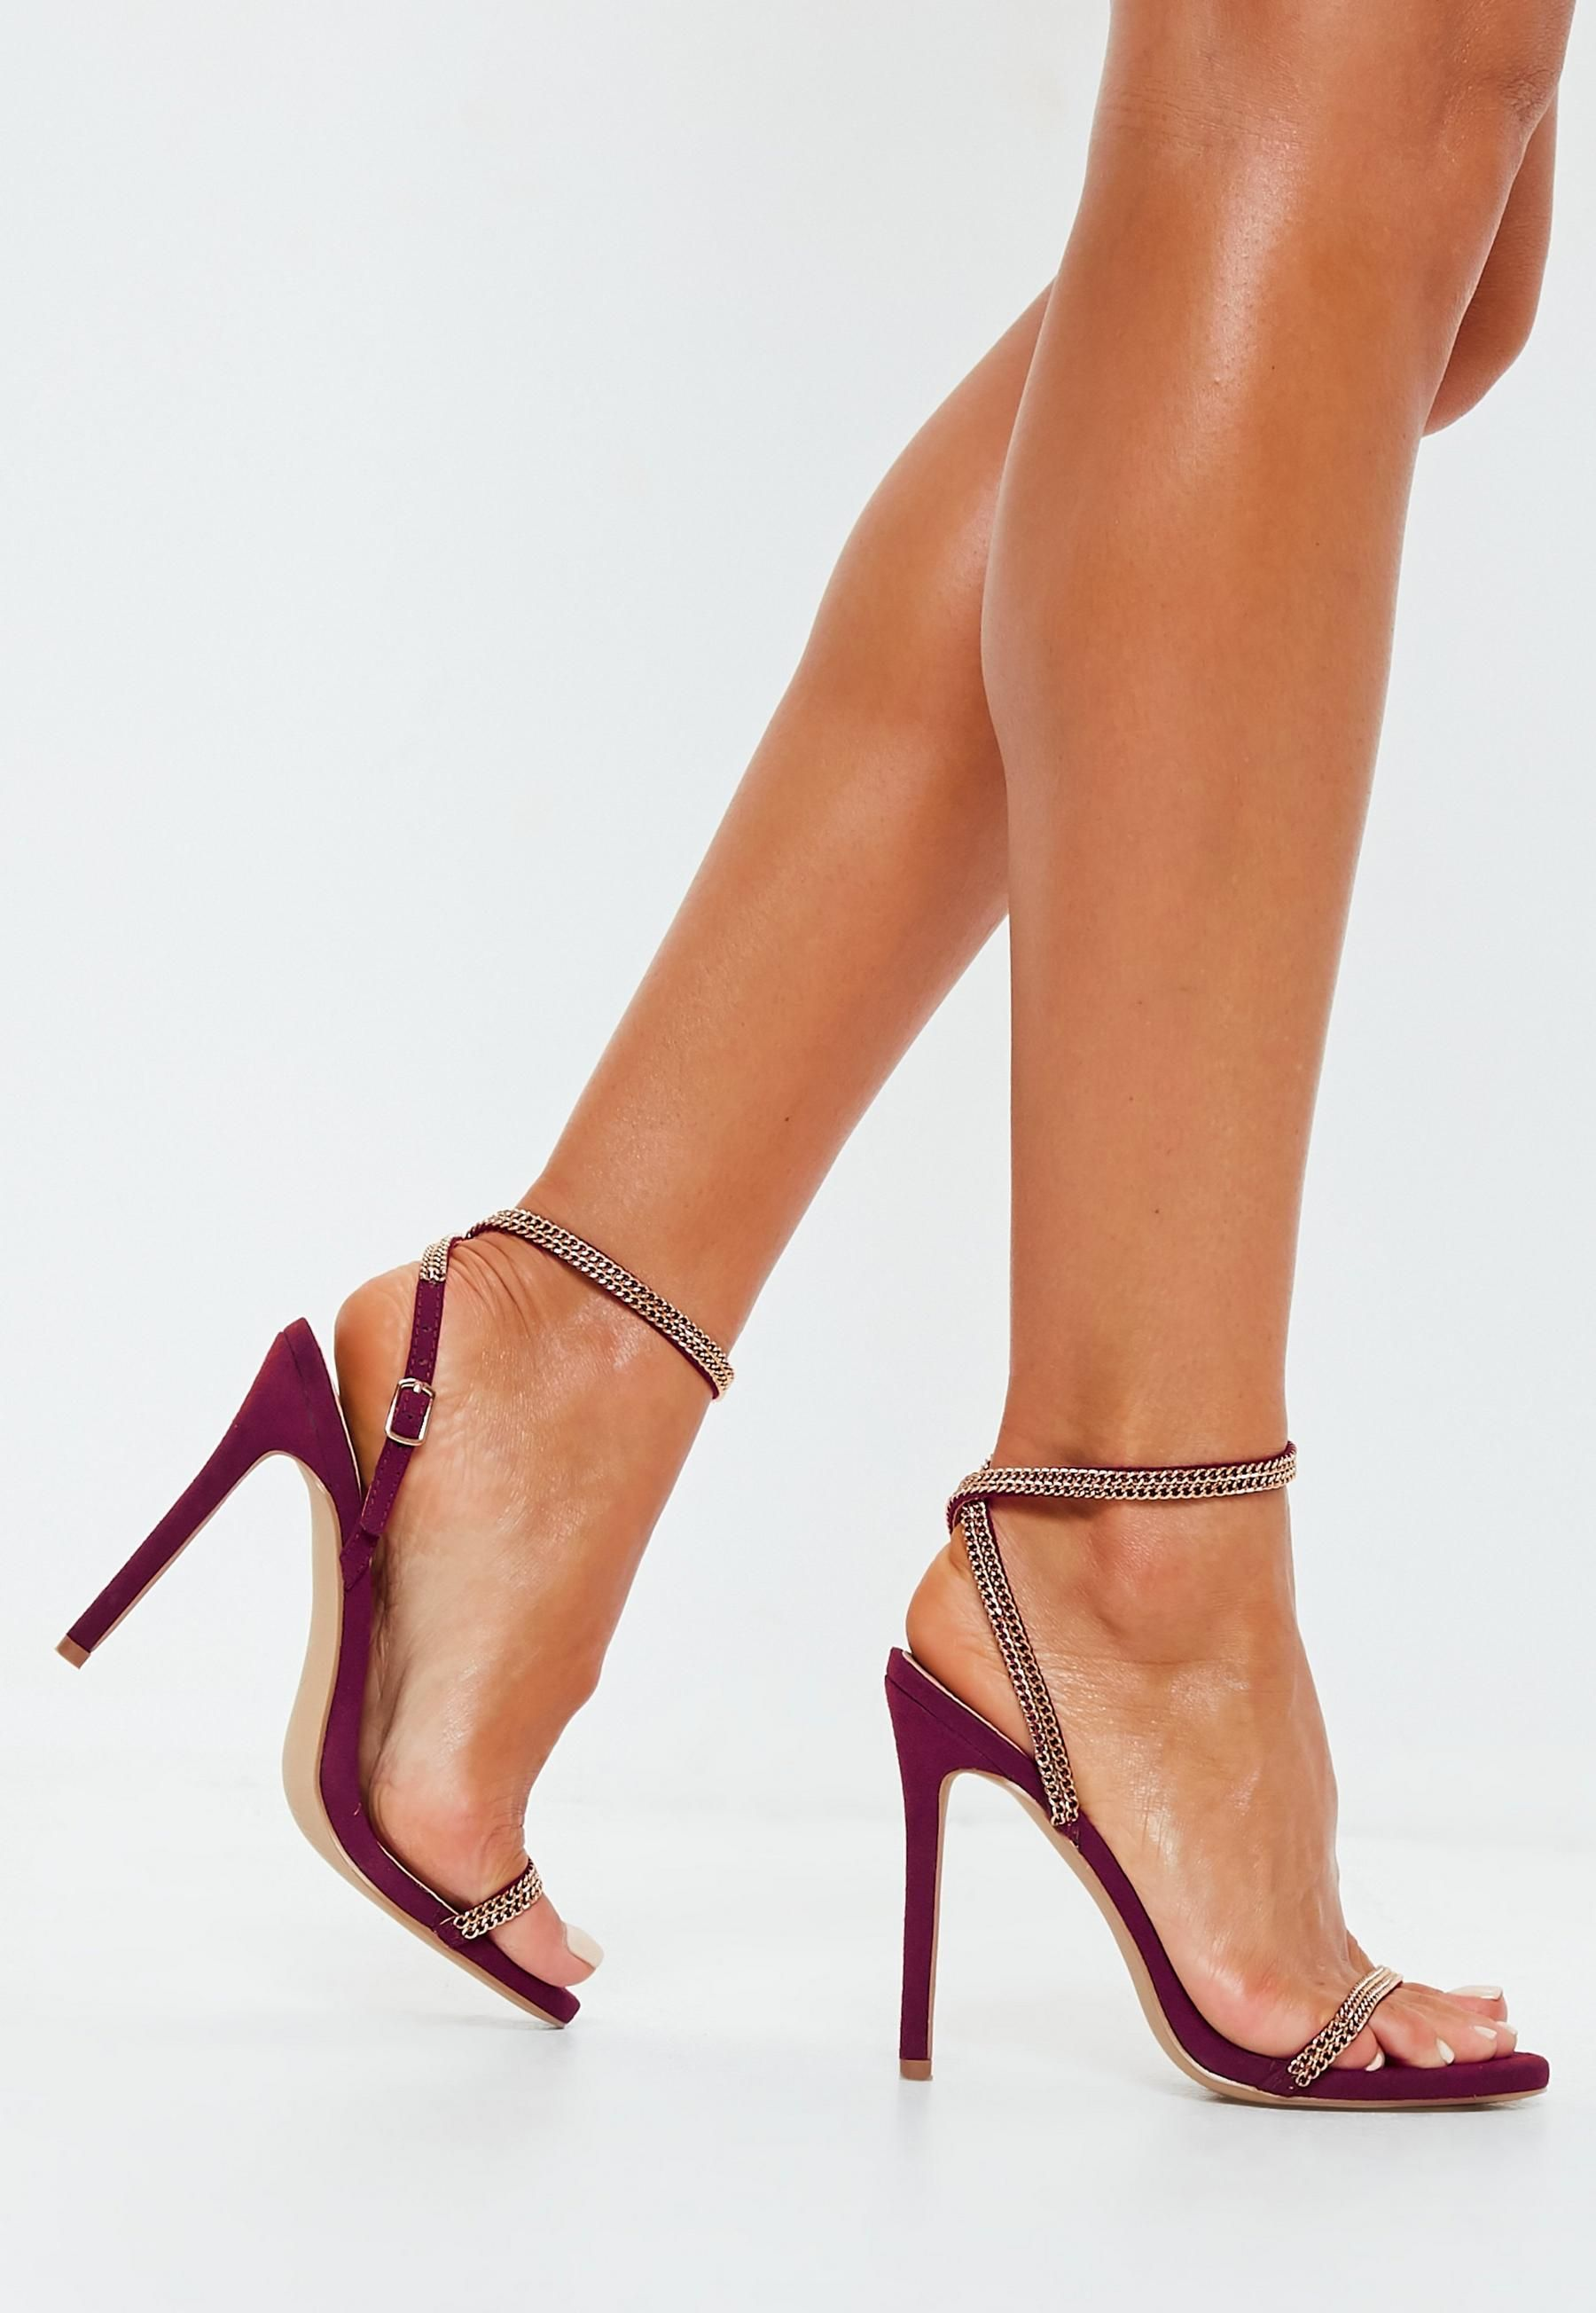 b5b10a6a53 Burgundy Chain Trim Barely There Heels in 2019 | #shoes | Heels ...